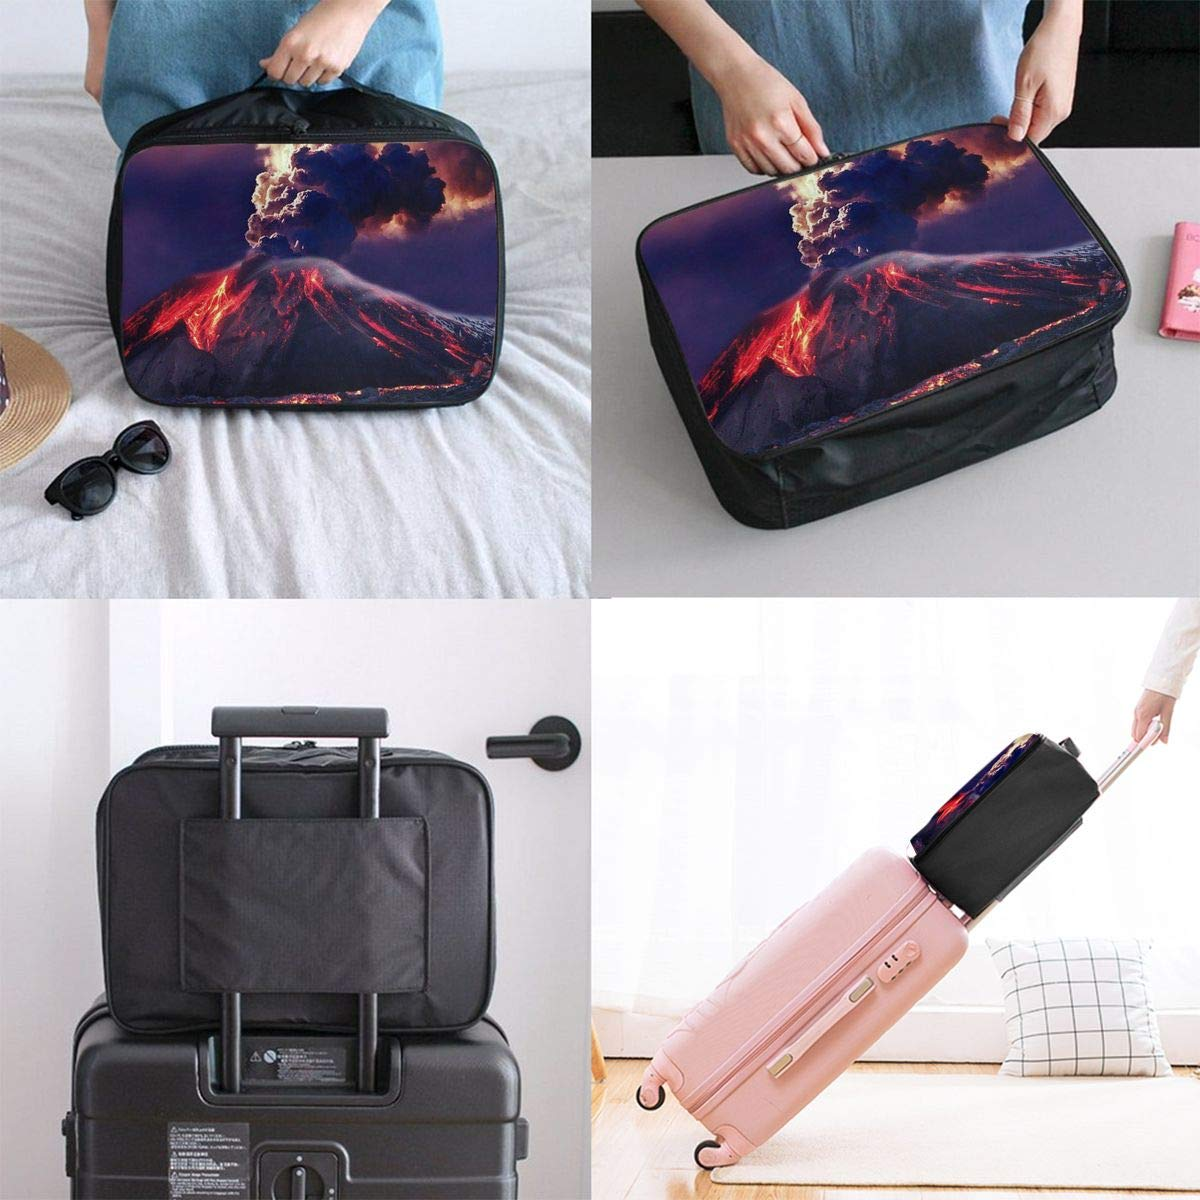 Travel Luggage Duffle Bag Lightweight Portable Handbag Fantasy Volcano Pattern Large Capacity Waterproof Foldable Storage Tote